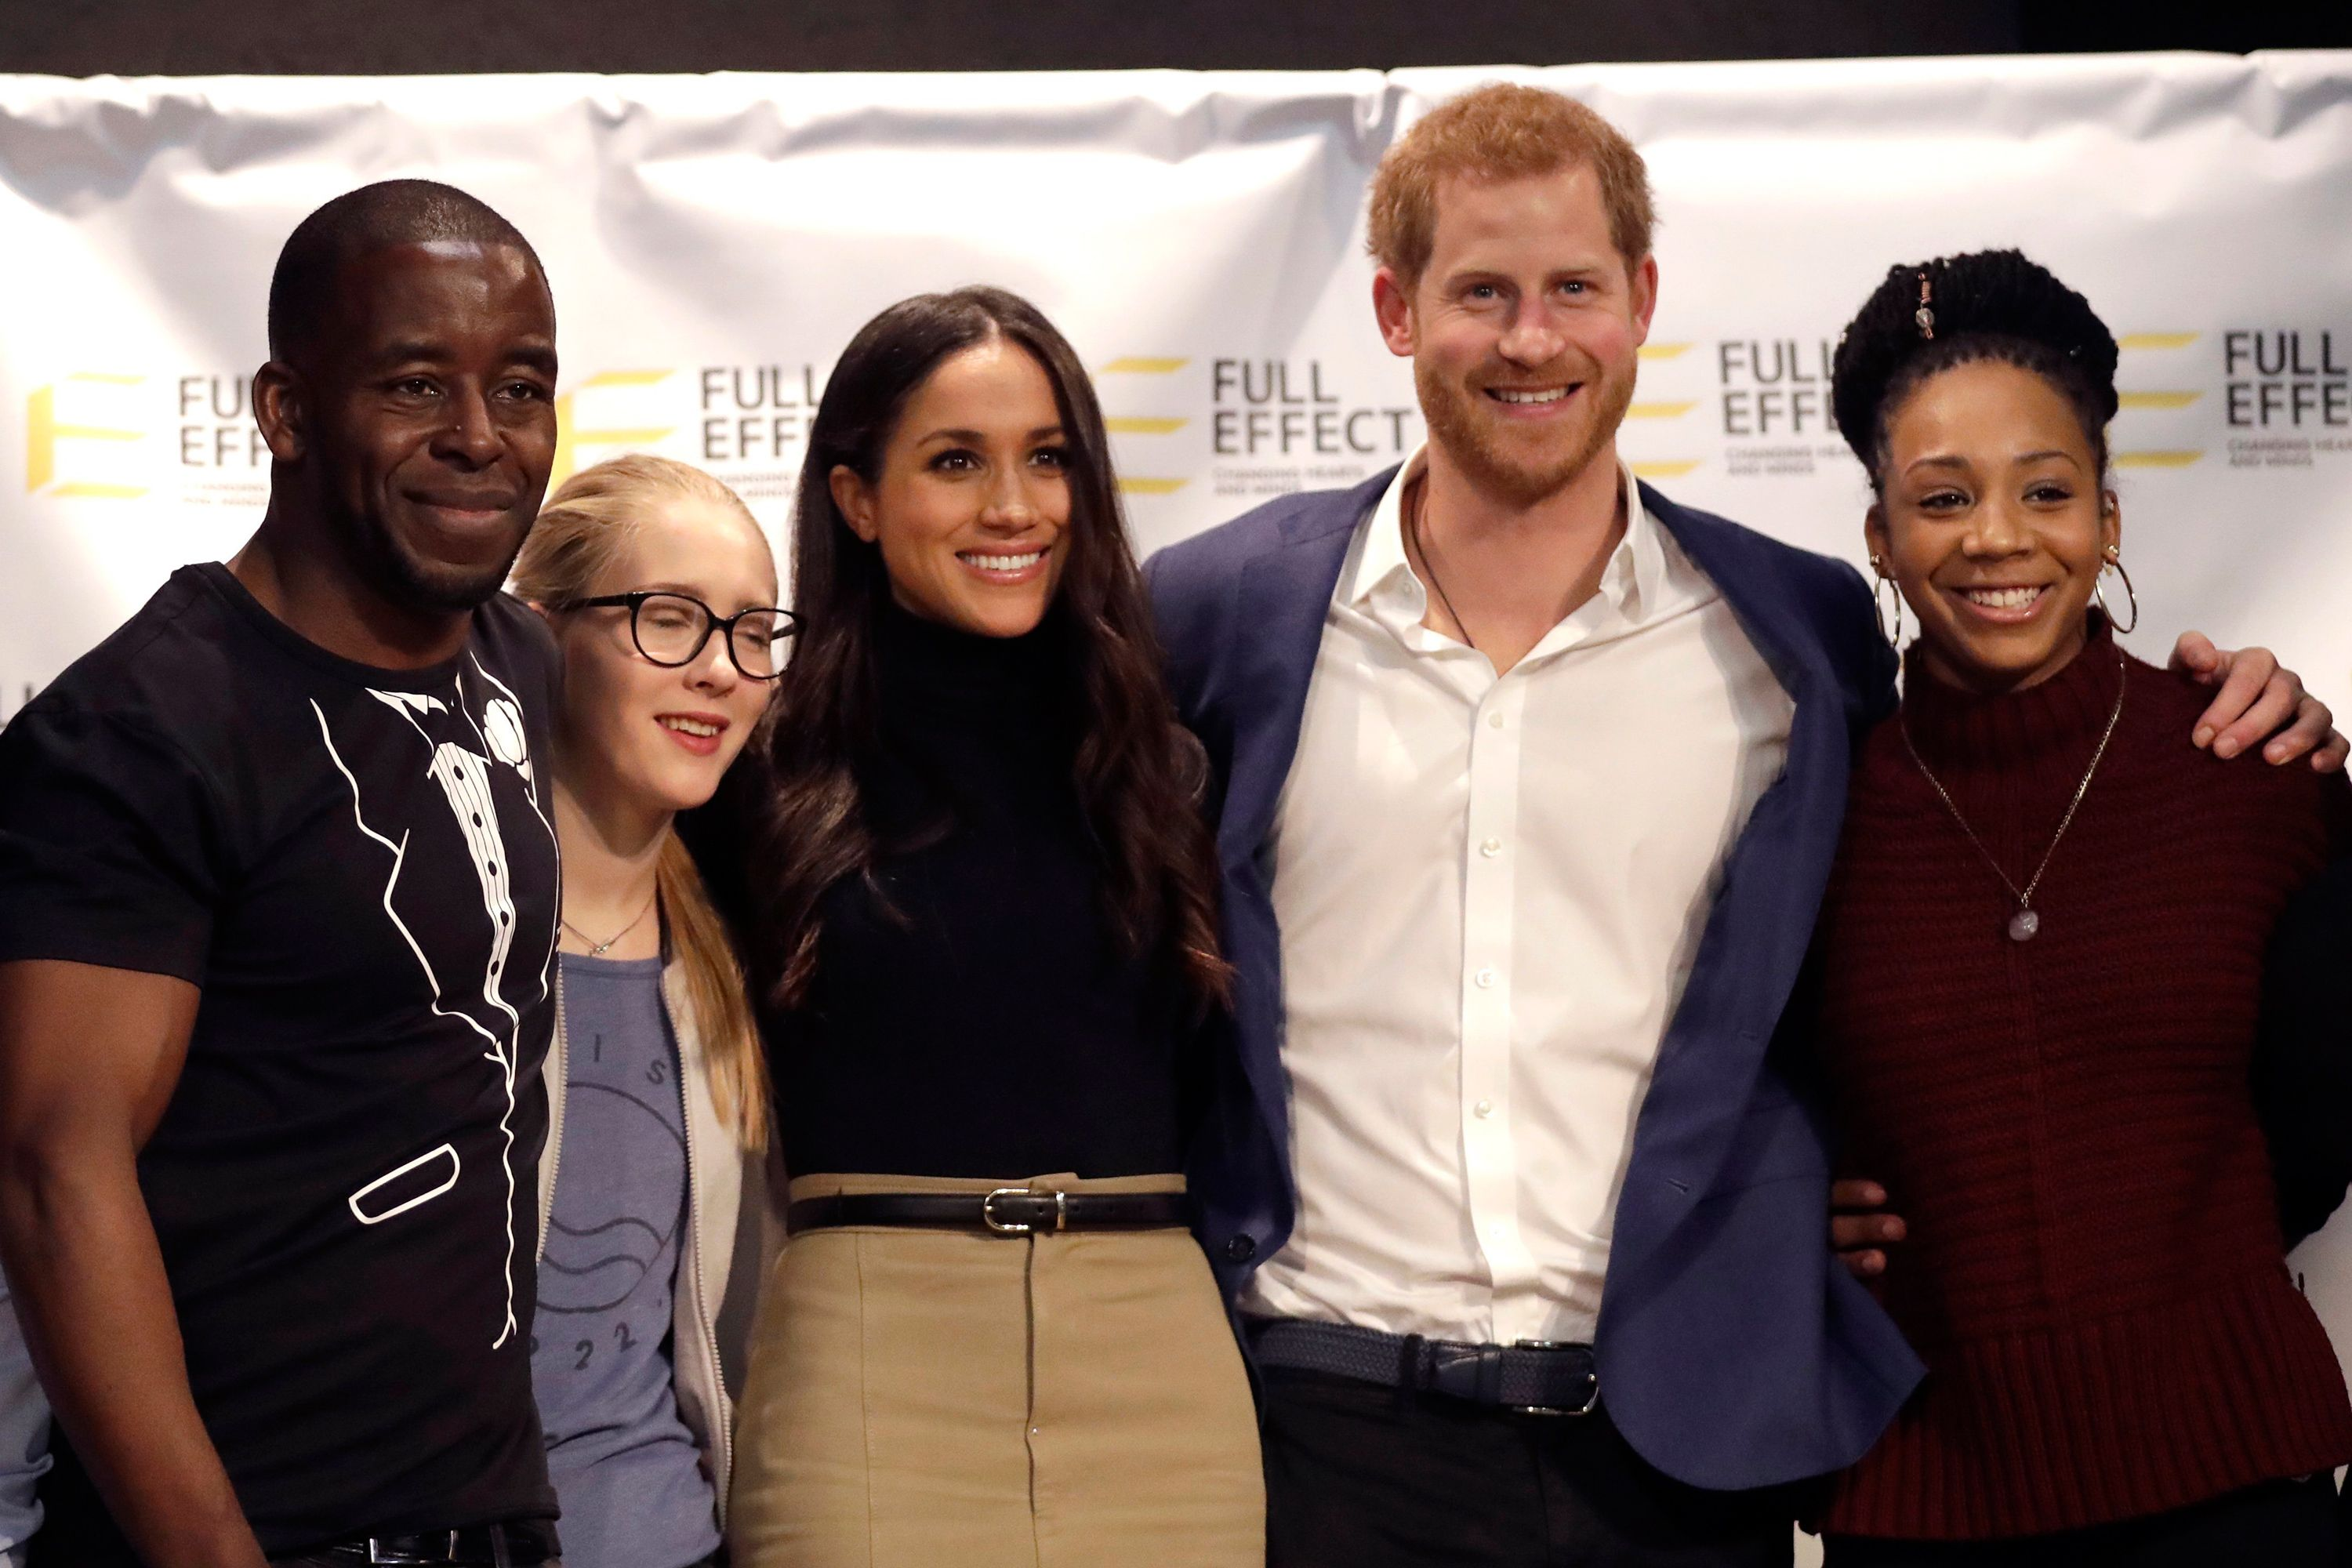 Harry and Meghan at Nottingham Academy